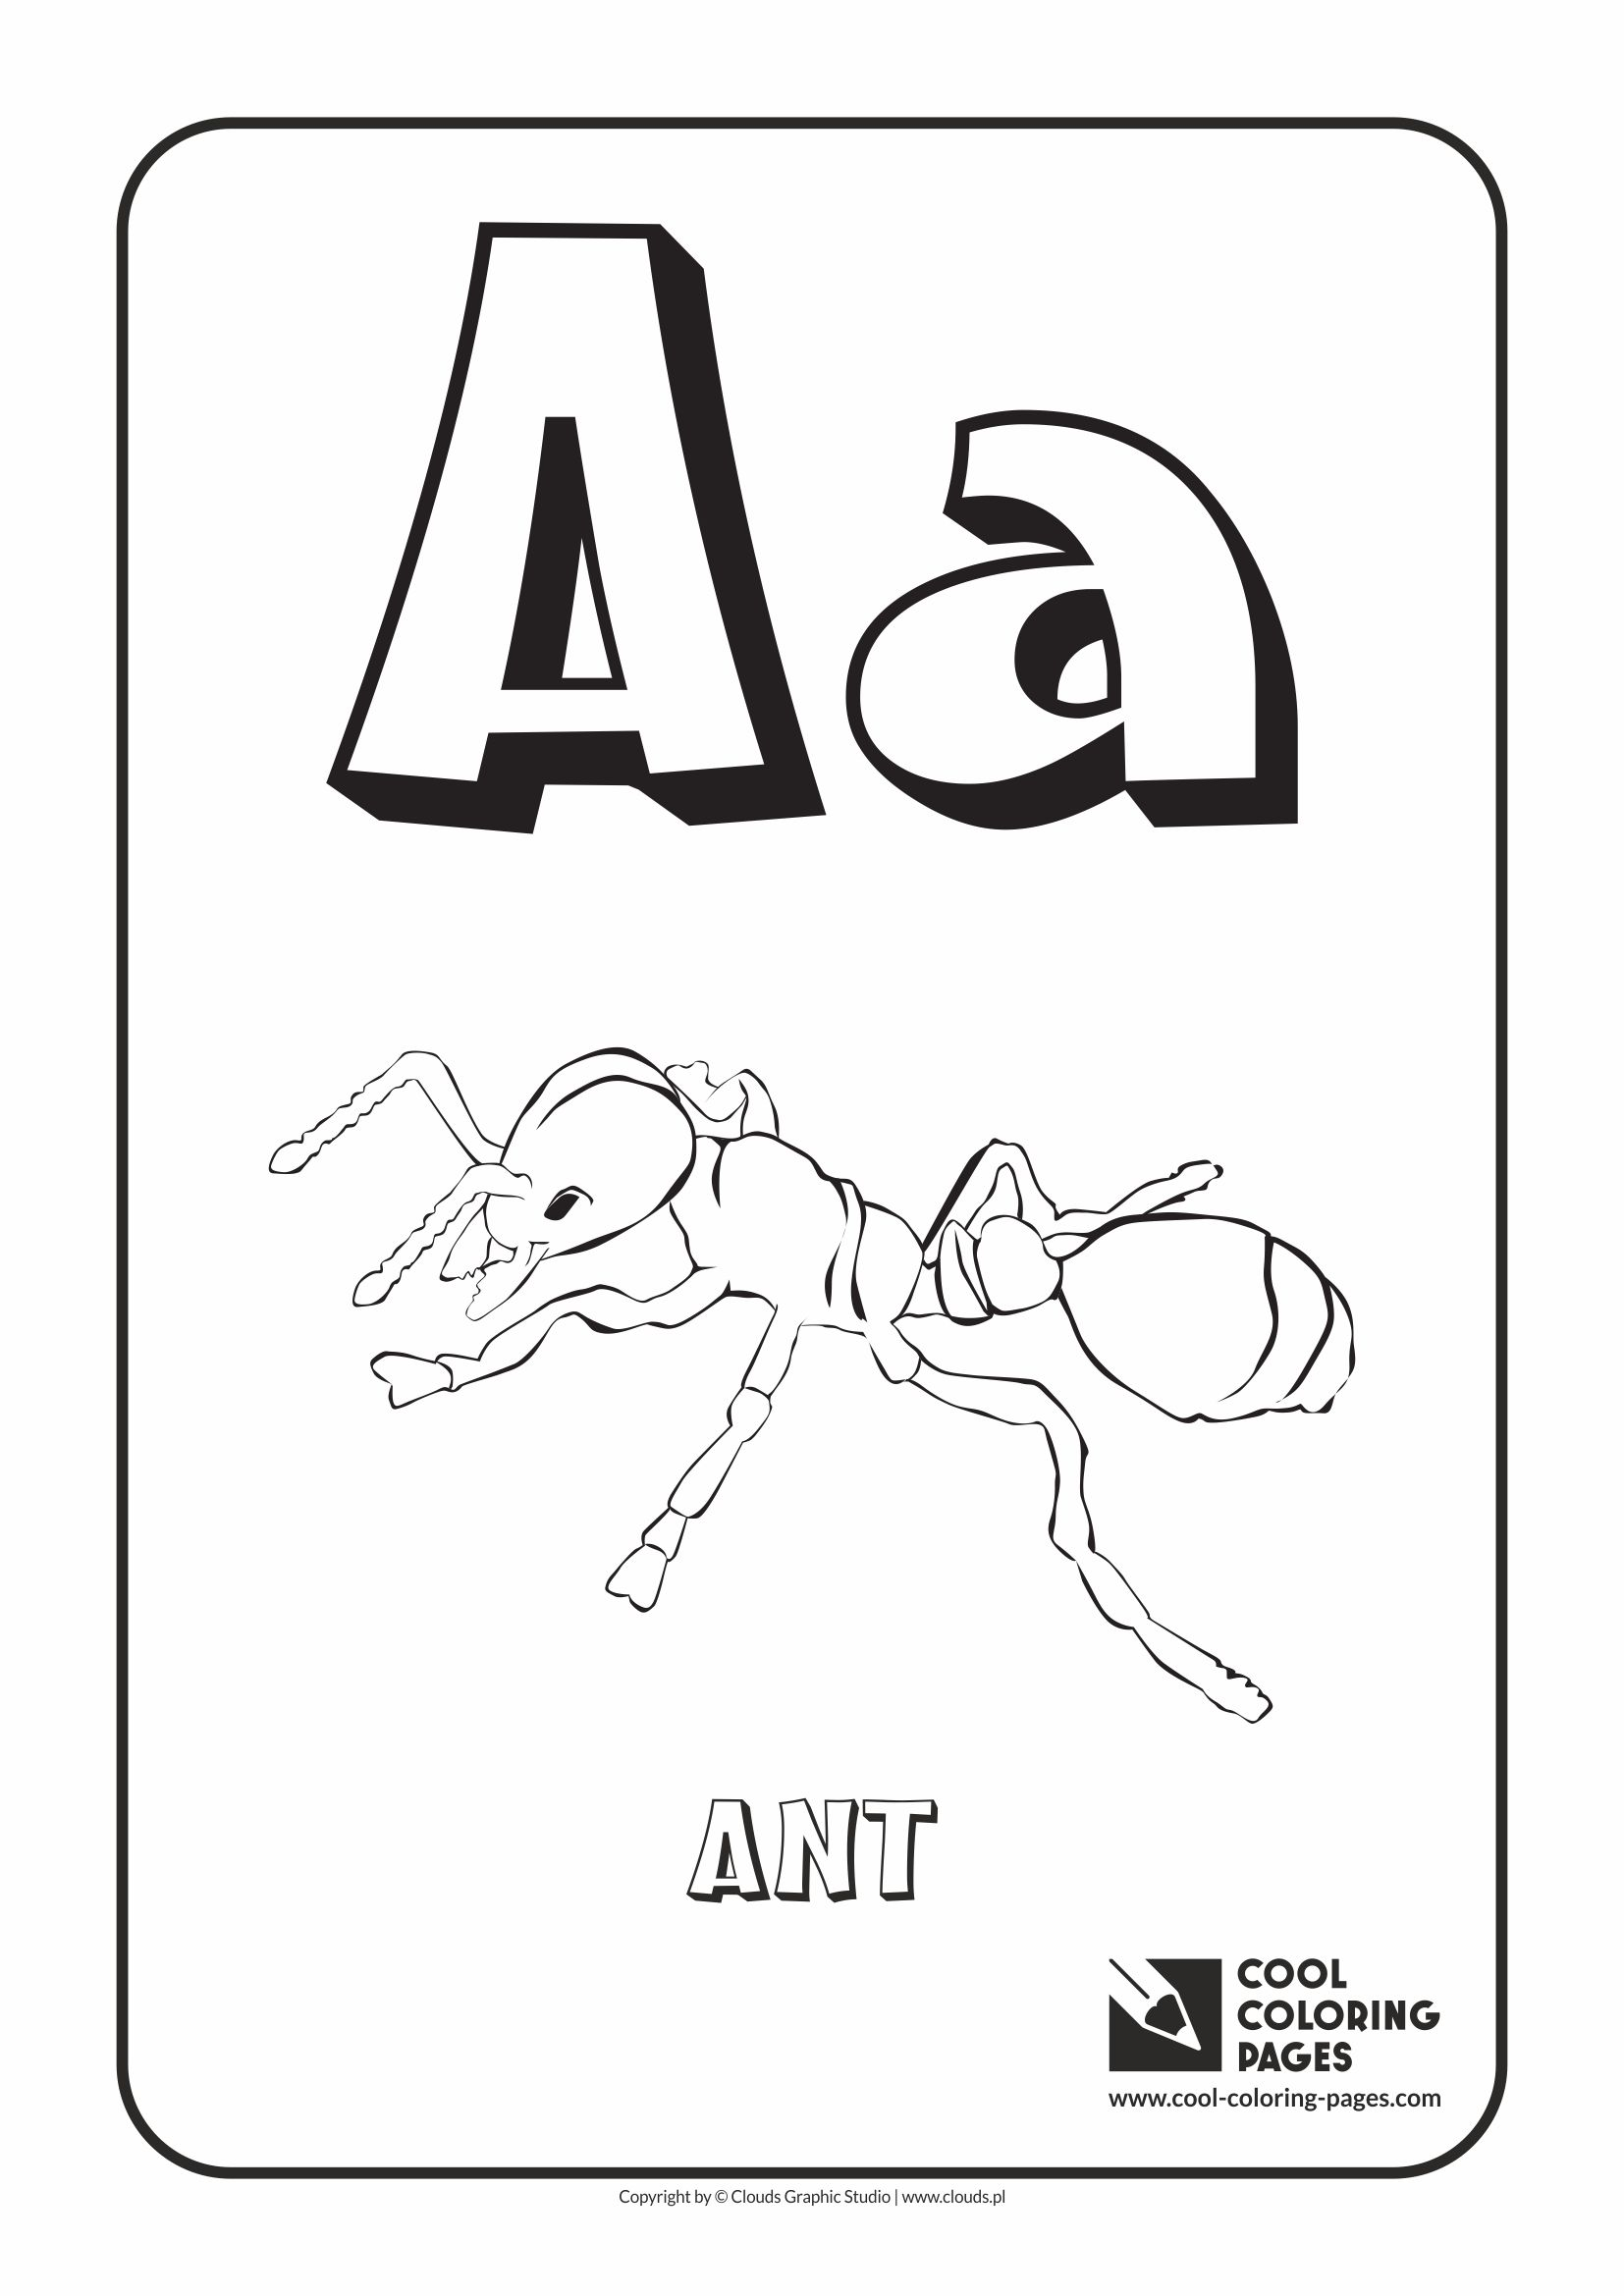 cool coloring pages alphabet letter a coloring page with letter a